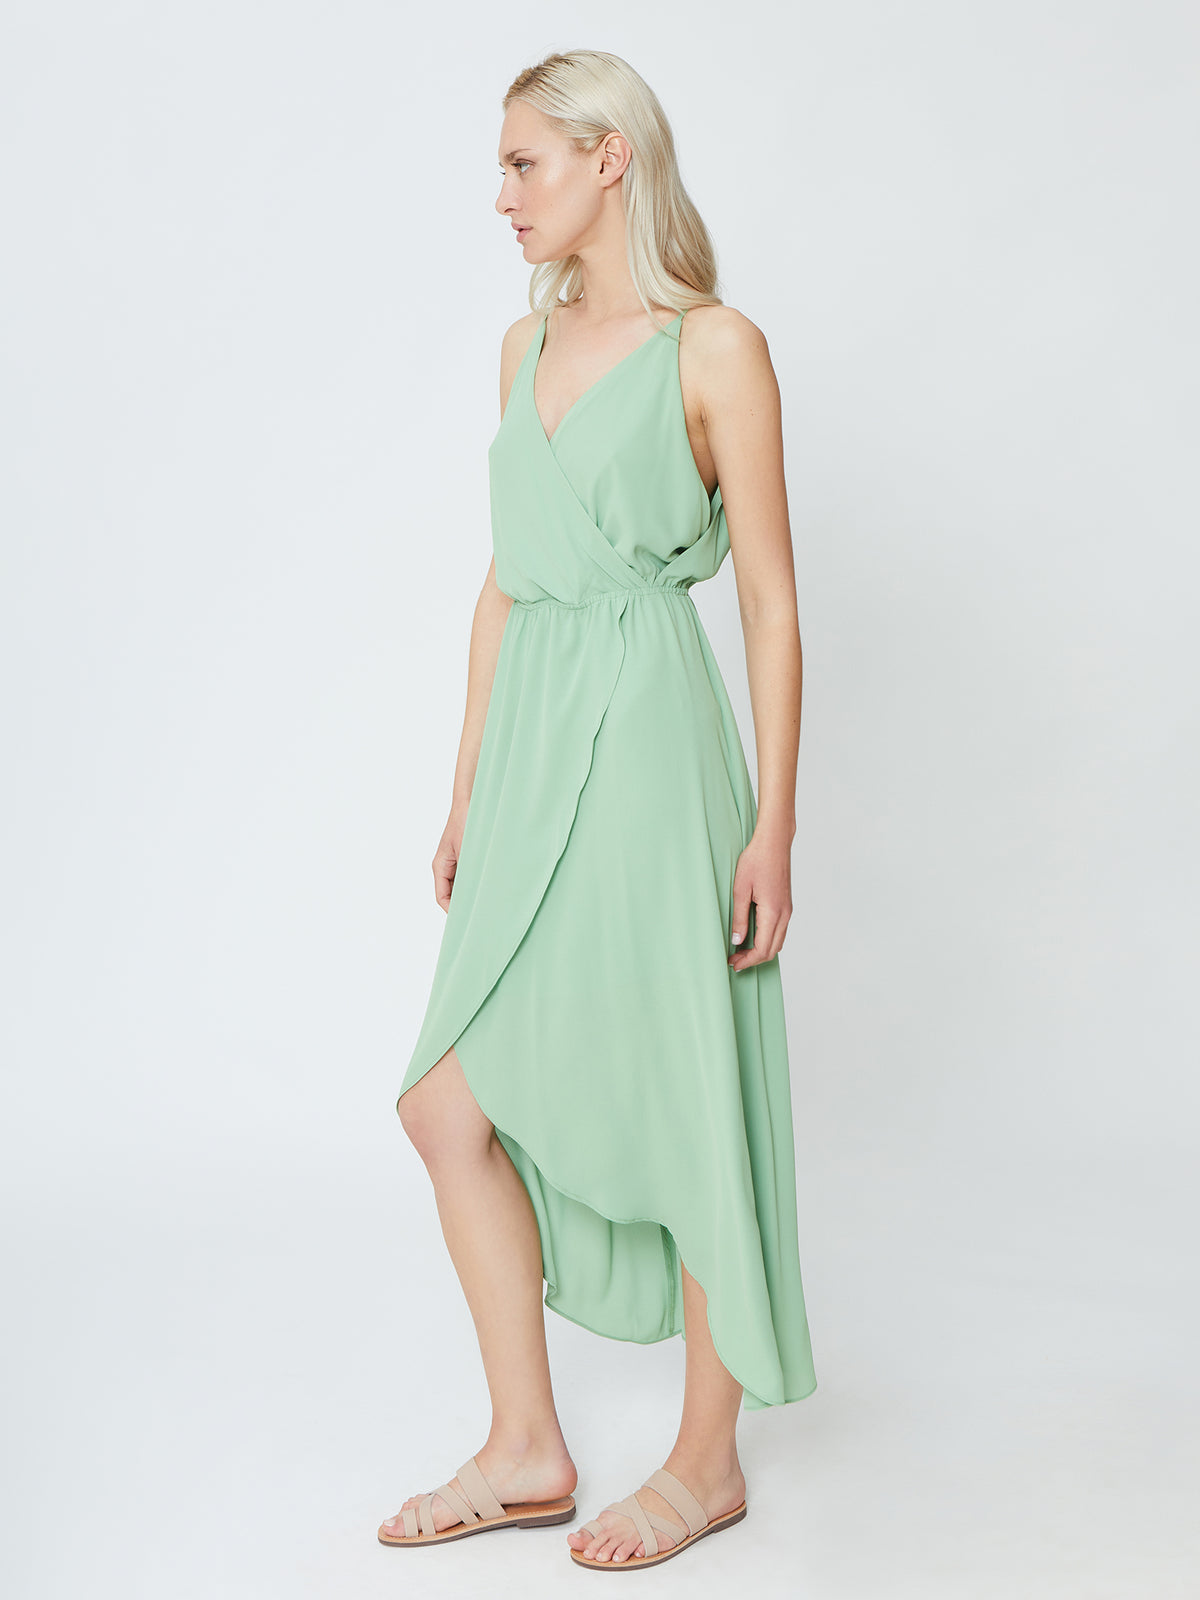 Orchid Dress - Green